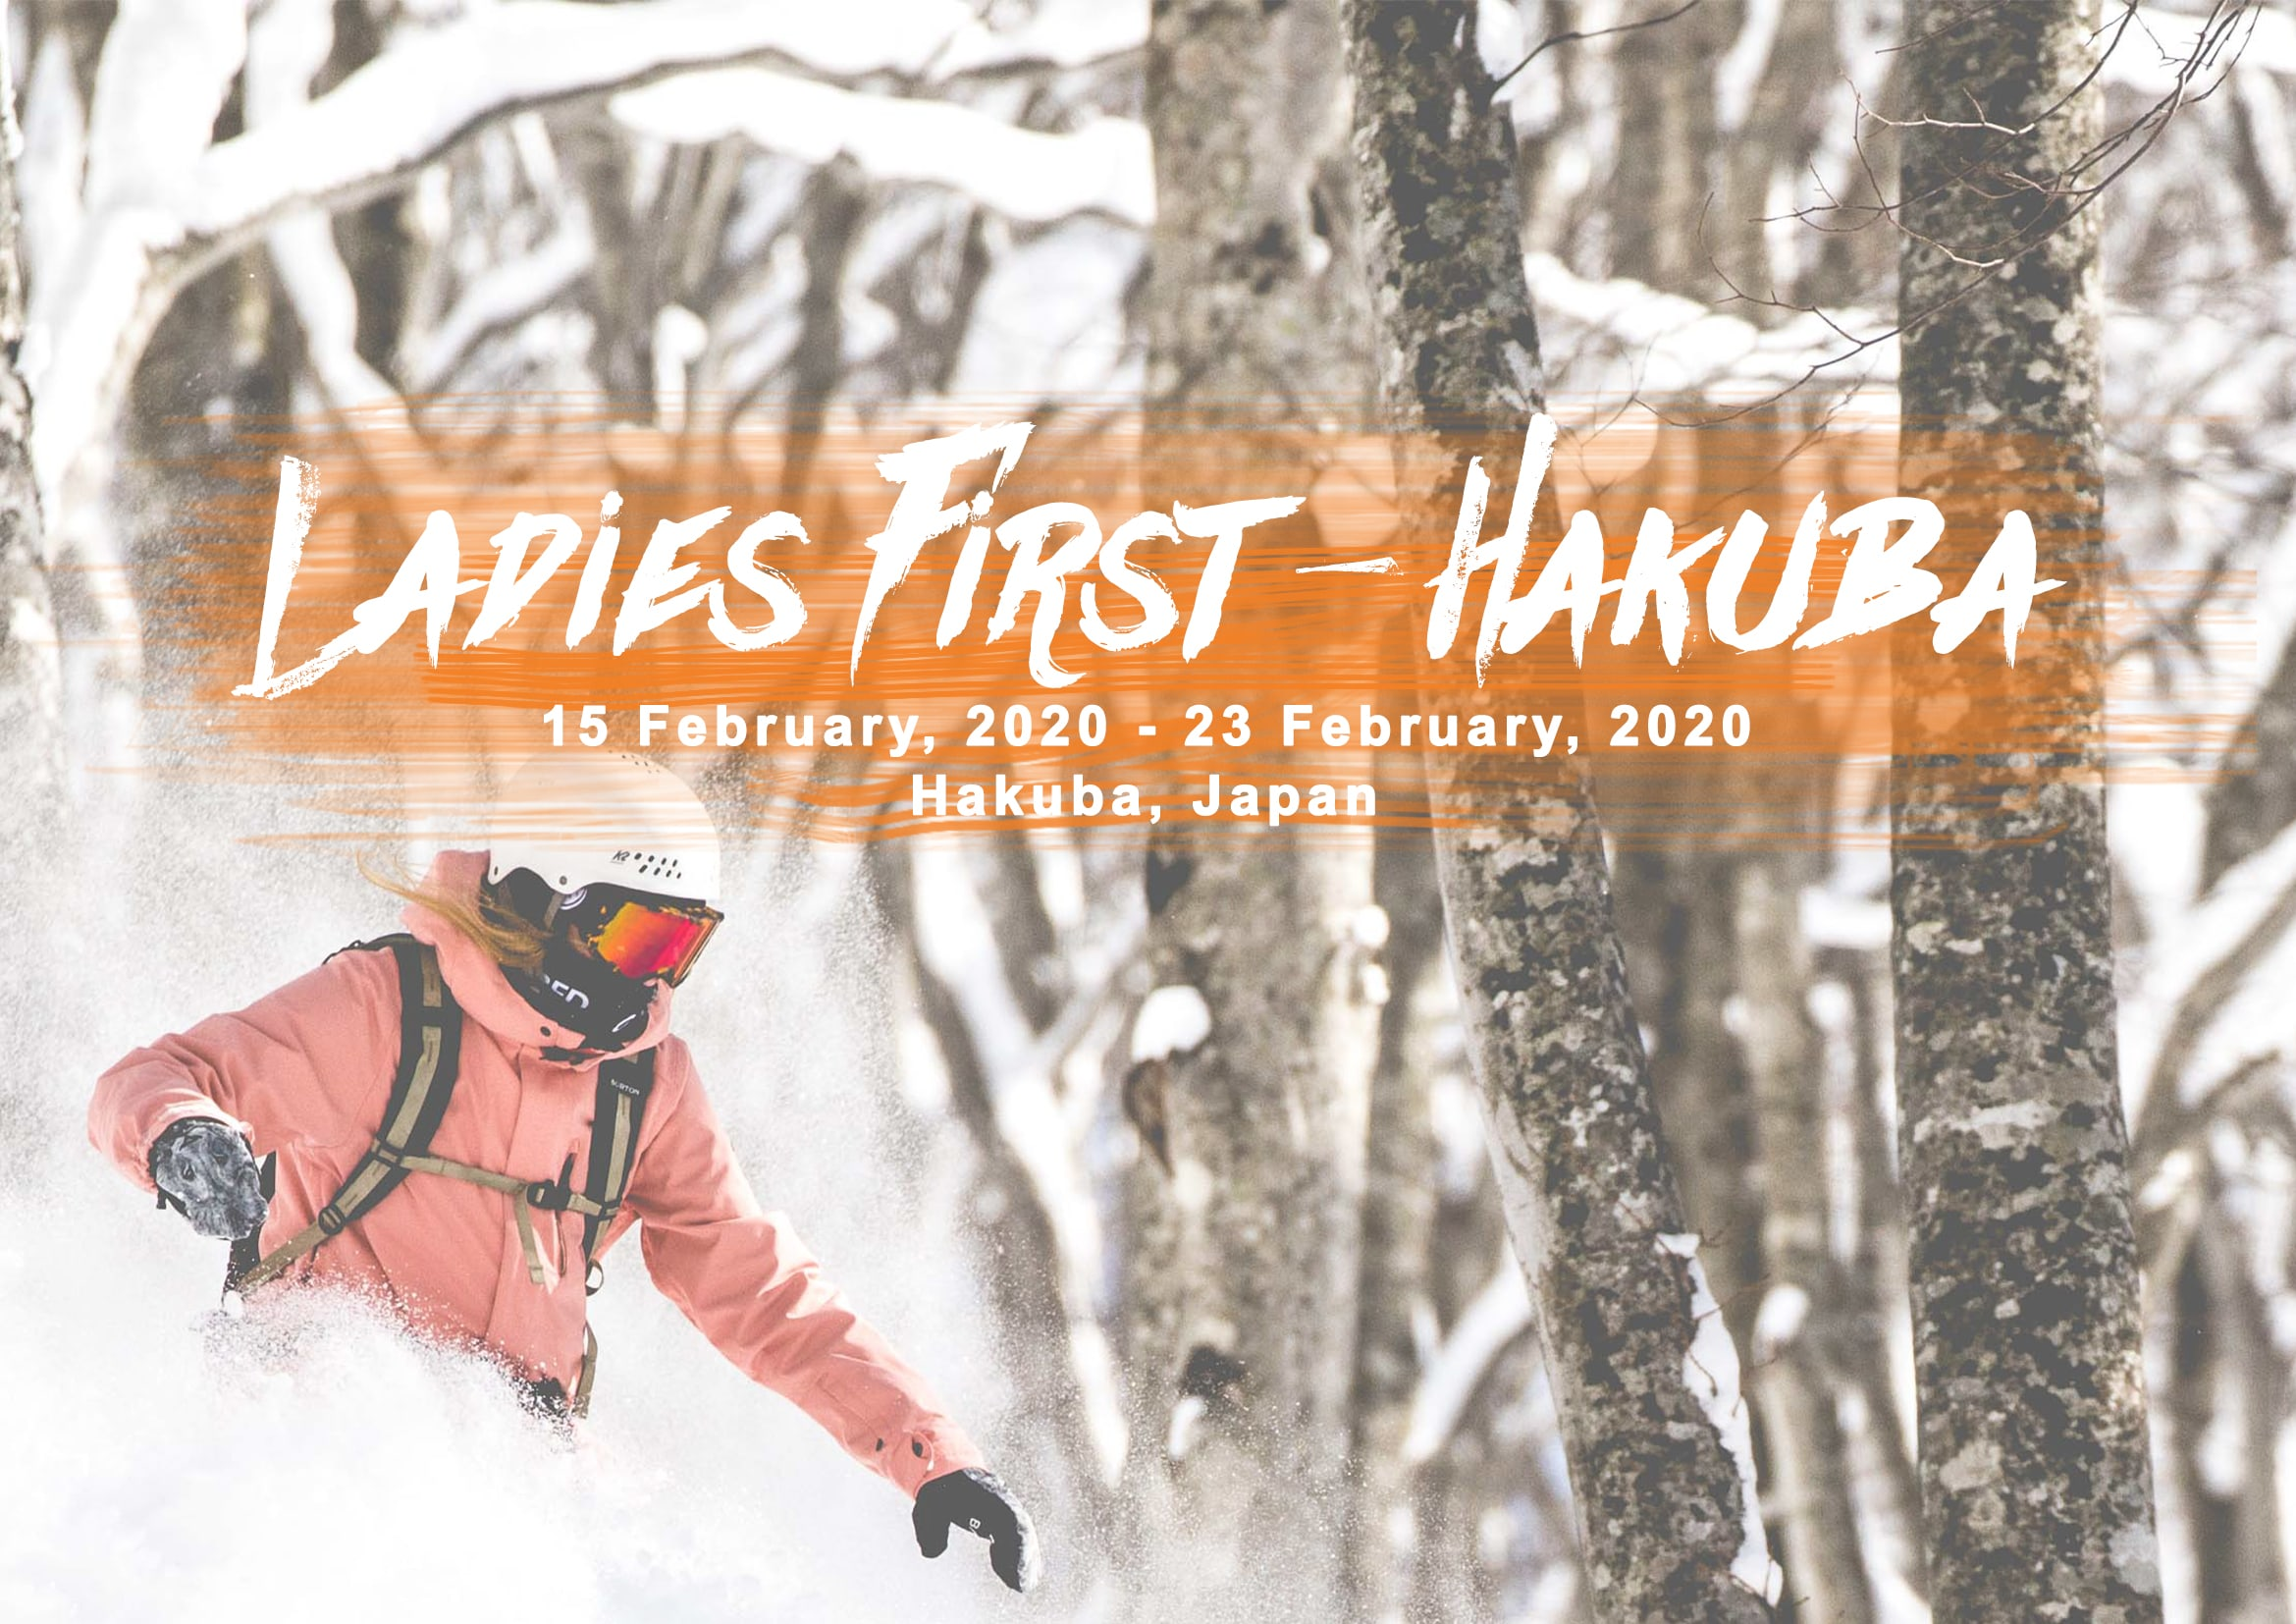 Ladies tour in Hakuba Japan with First Tours